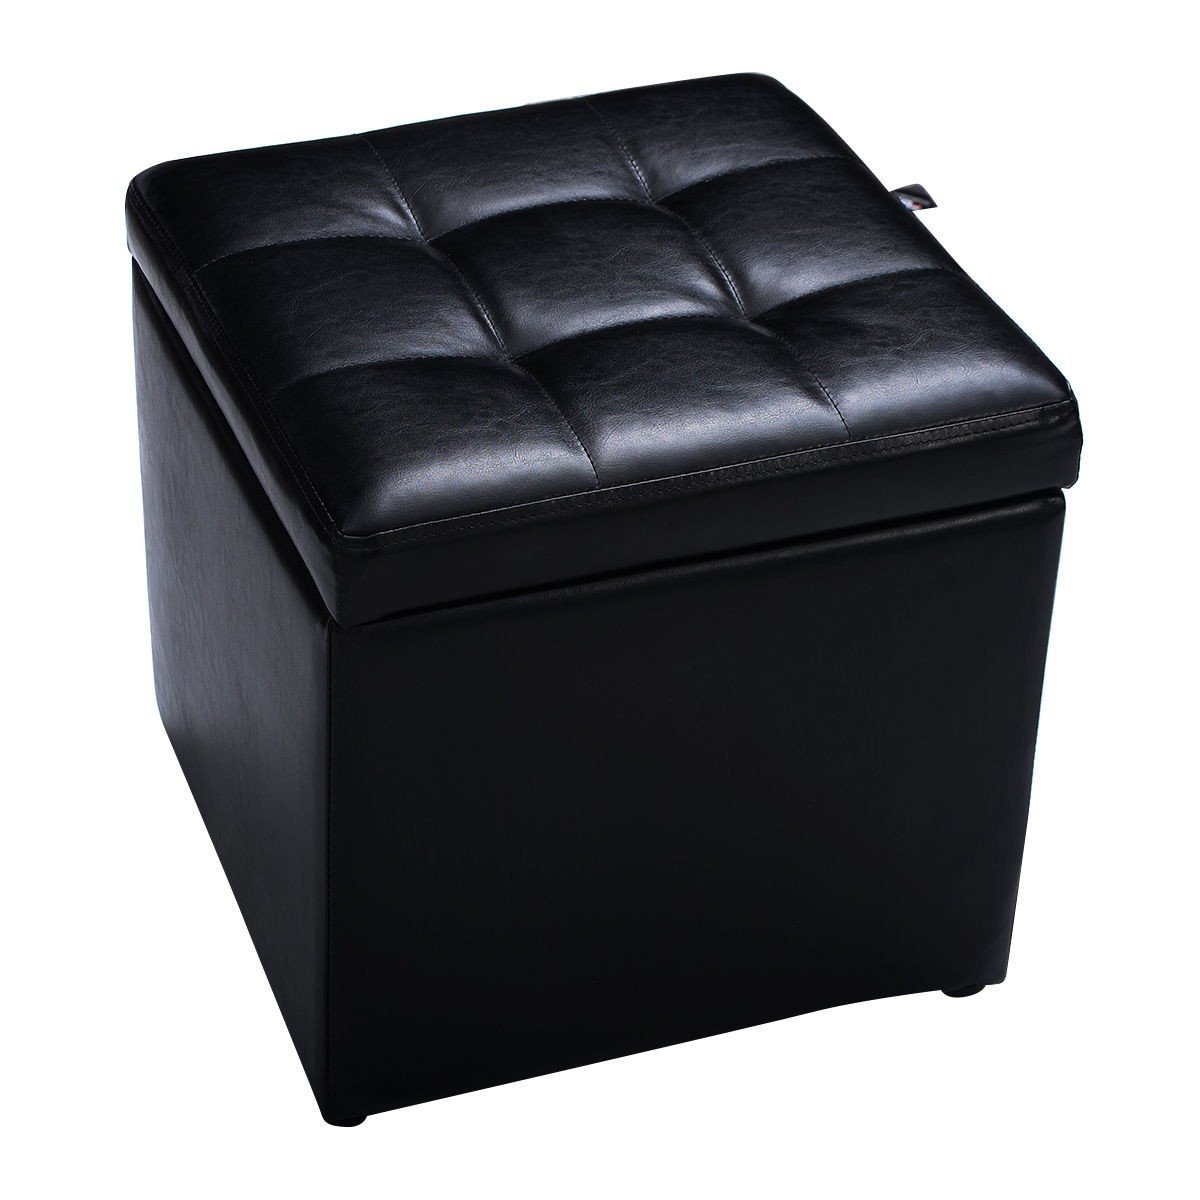 Get Quotations Cube Ottoman Pouffe Storage Box Lounge Seat Footstools With Hinge Top New Simple Faux